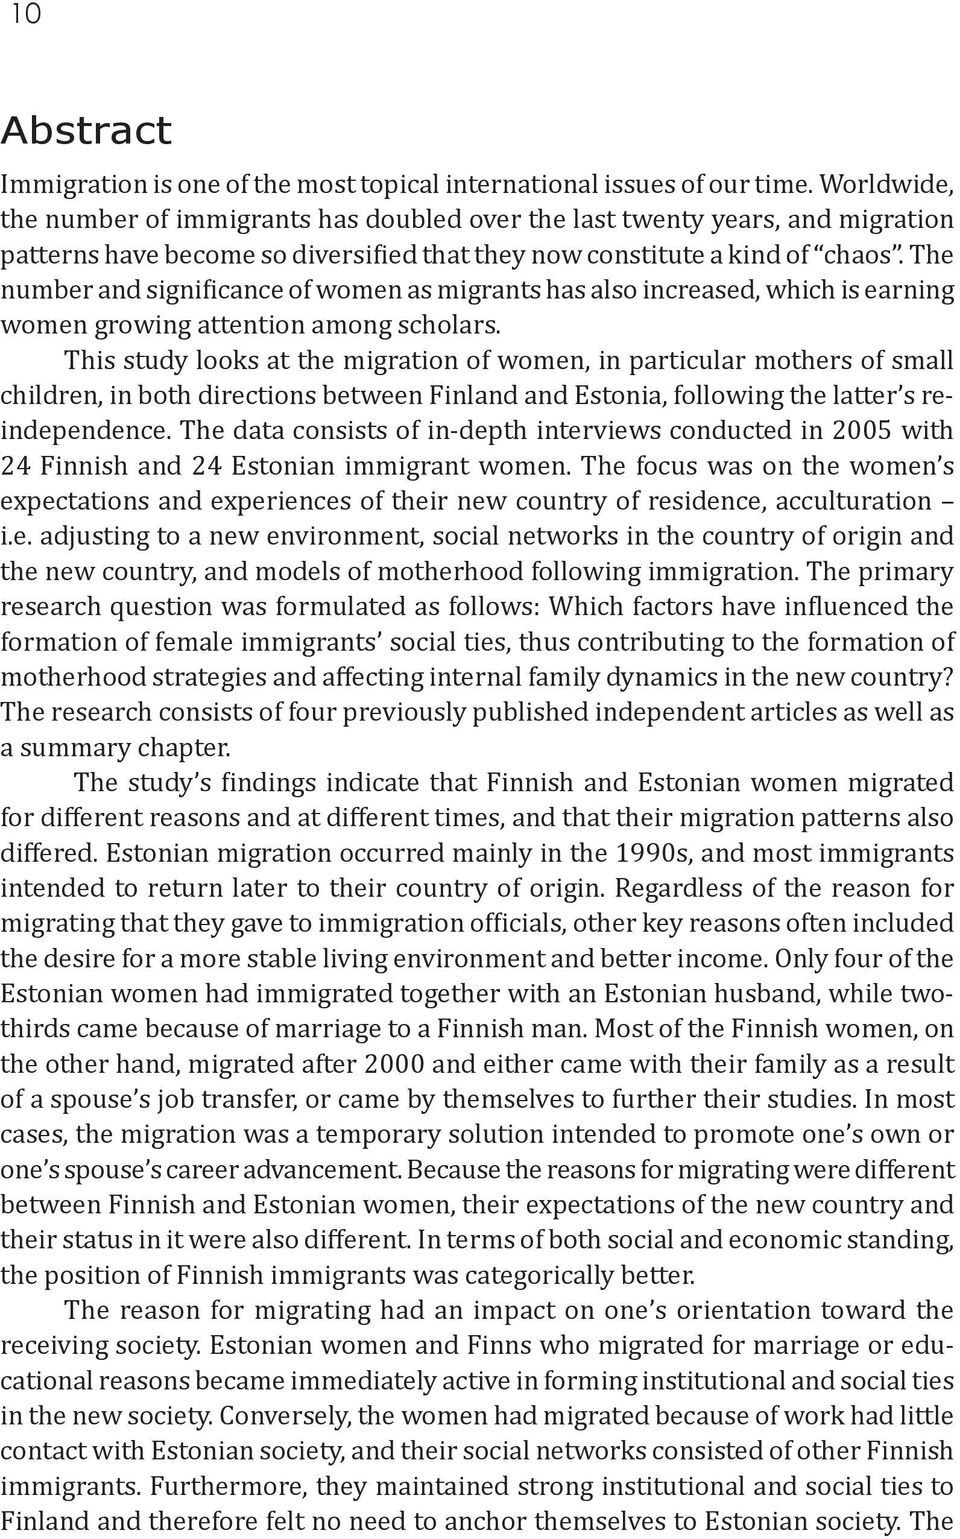 The number and significance of women as migrants has also increased, which is earning women growing attention among scholars.